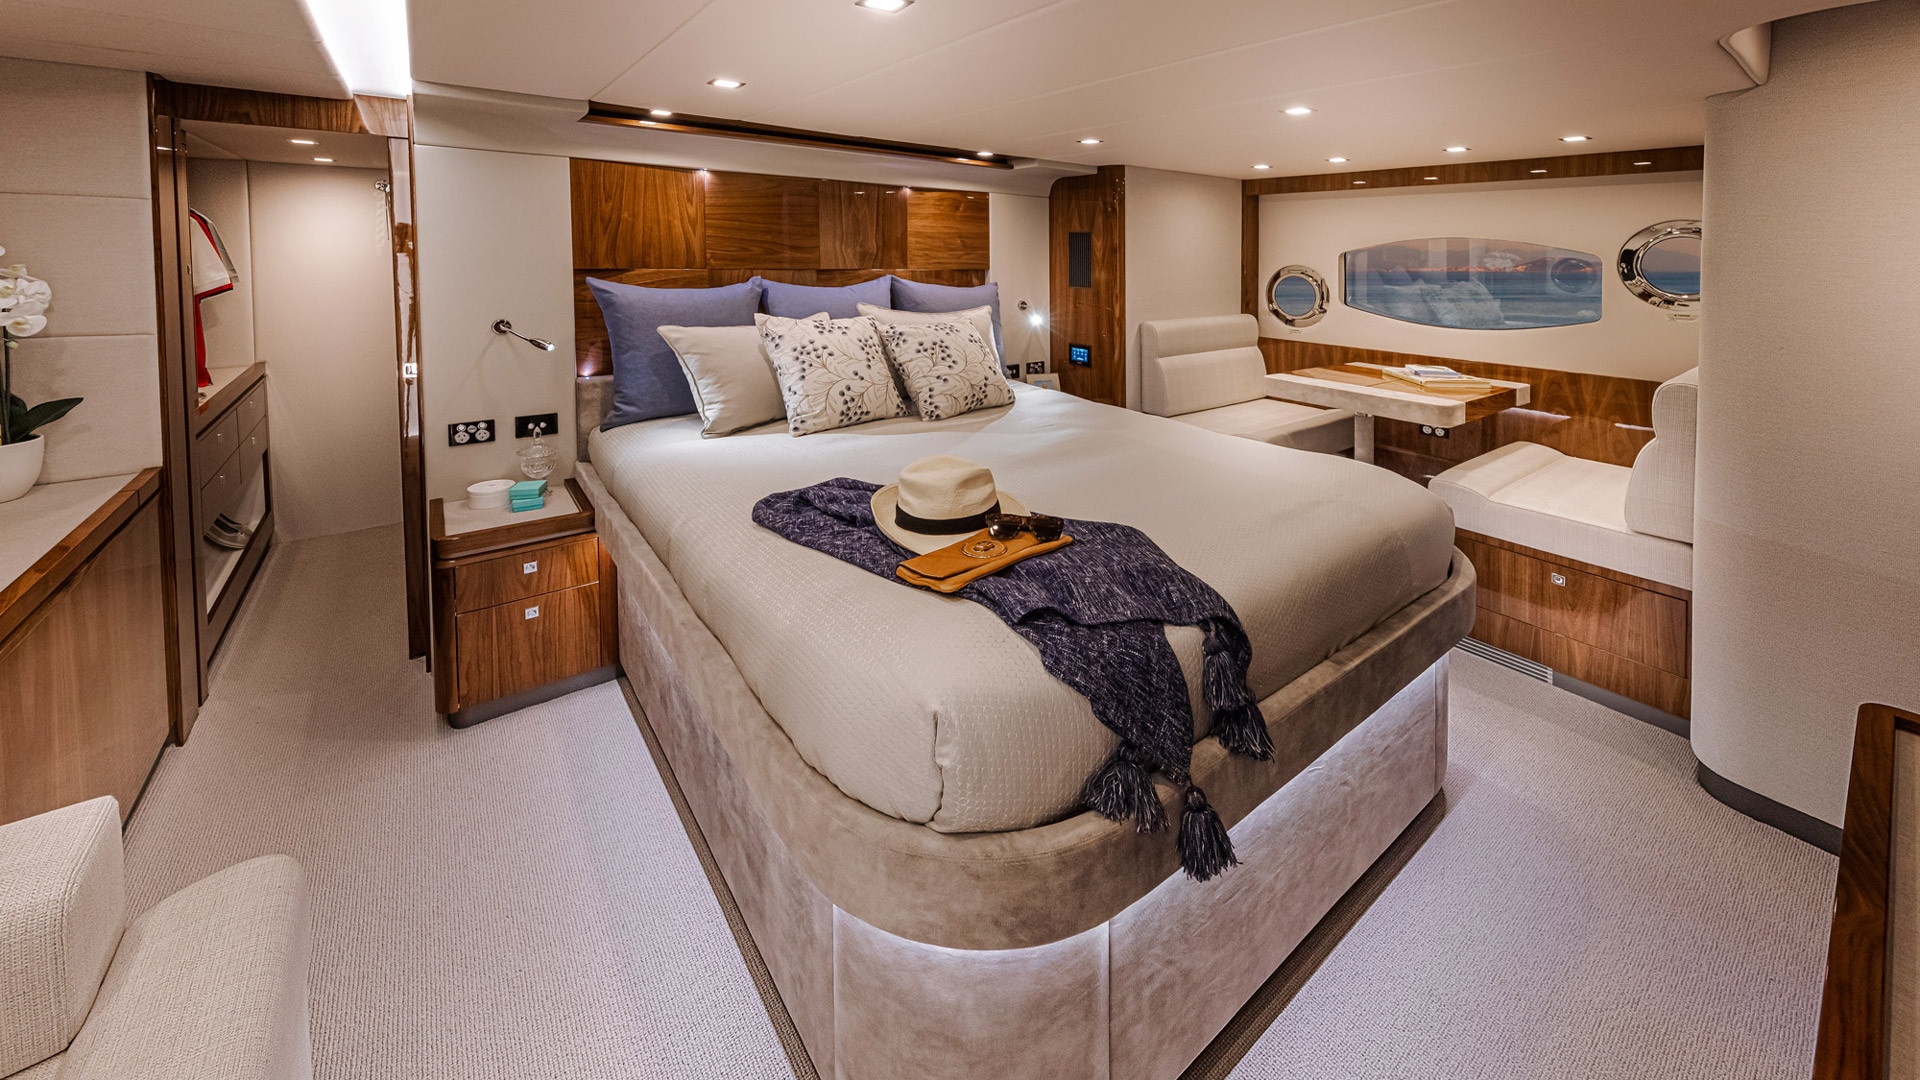 The Presidential stateroom on board the Riviera 6000 Sports Yacht Platinum Edition